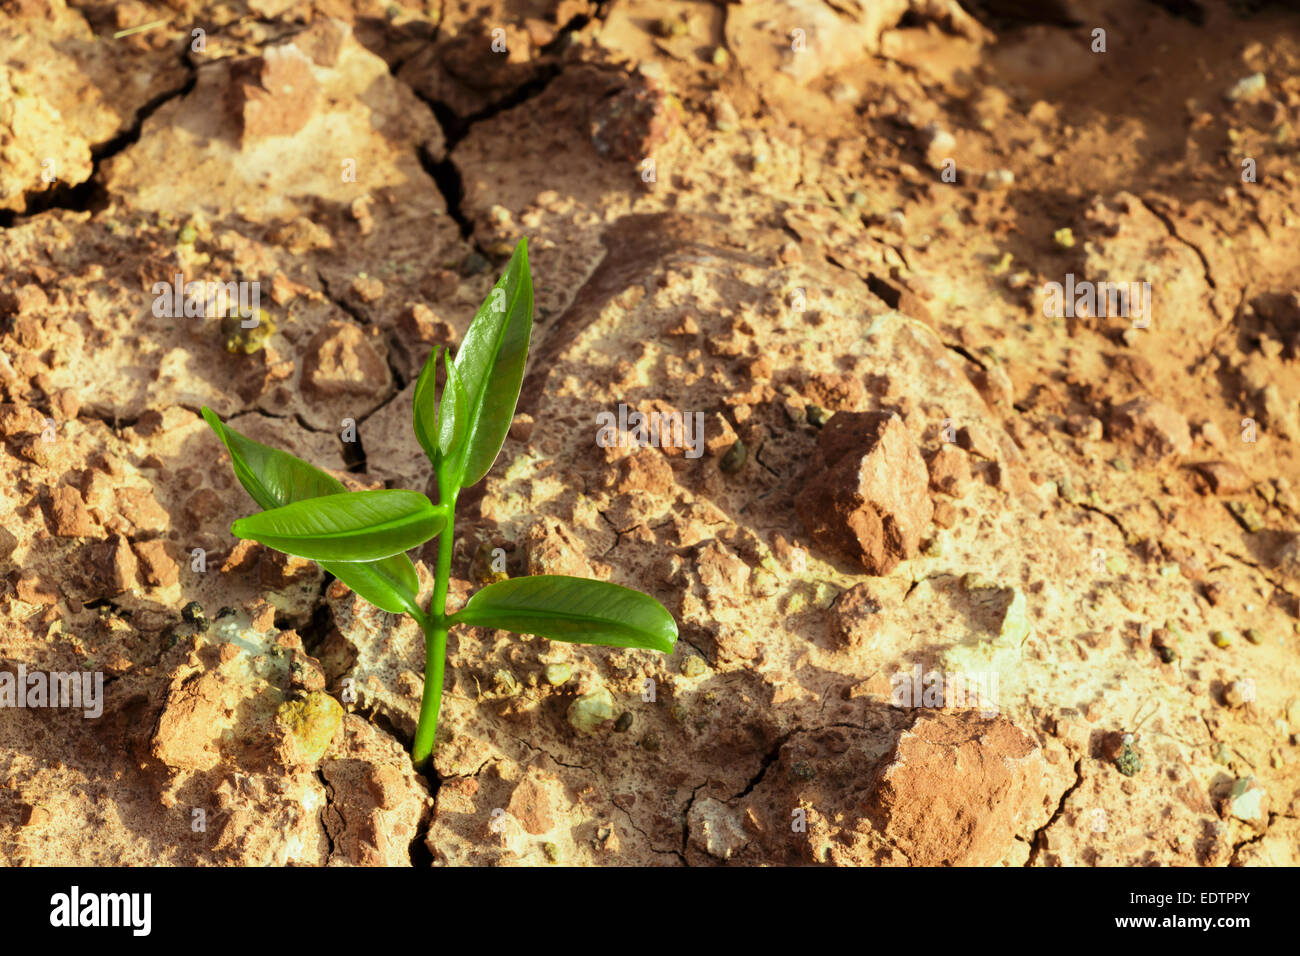 The sprout survive on cracked ground in arid environment - Stock Image